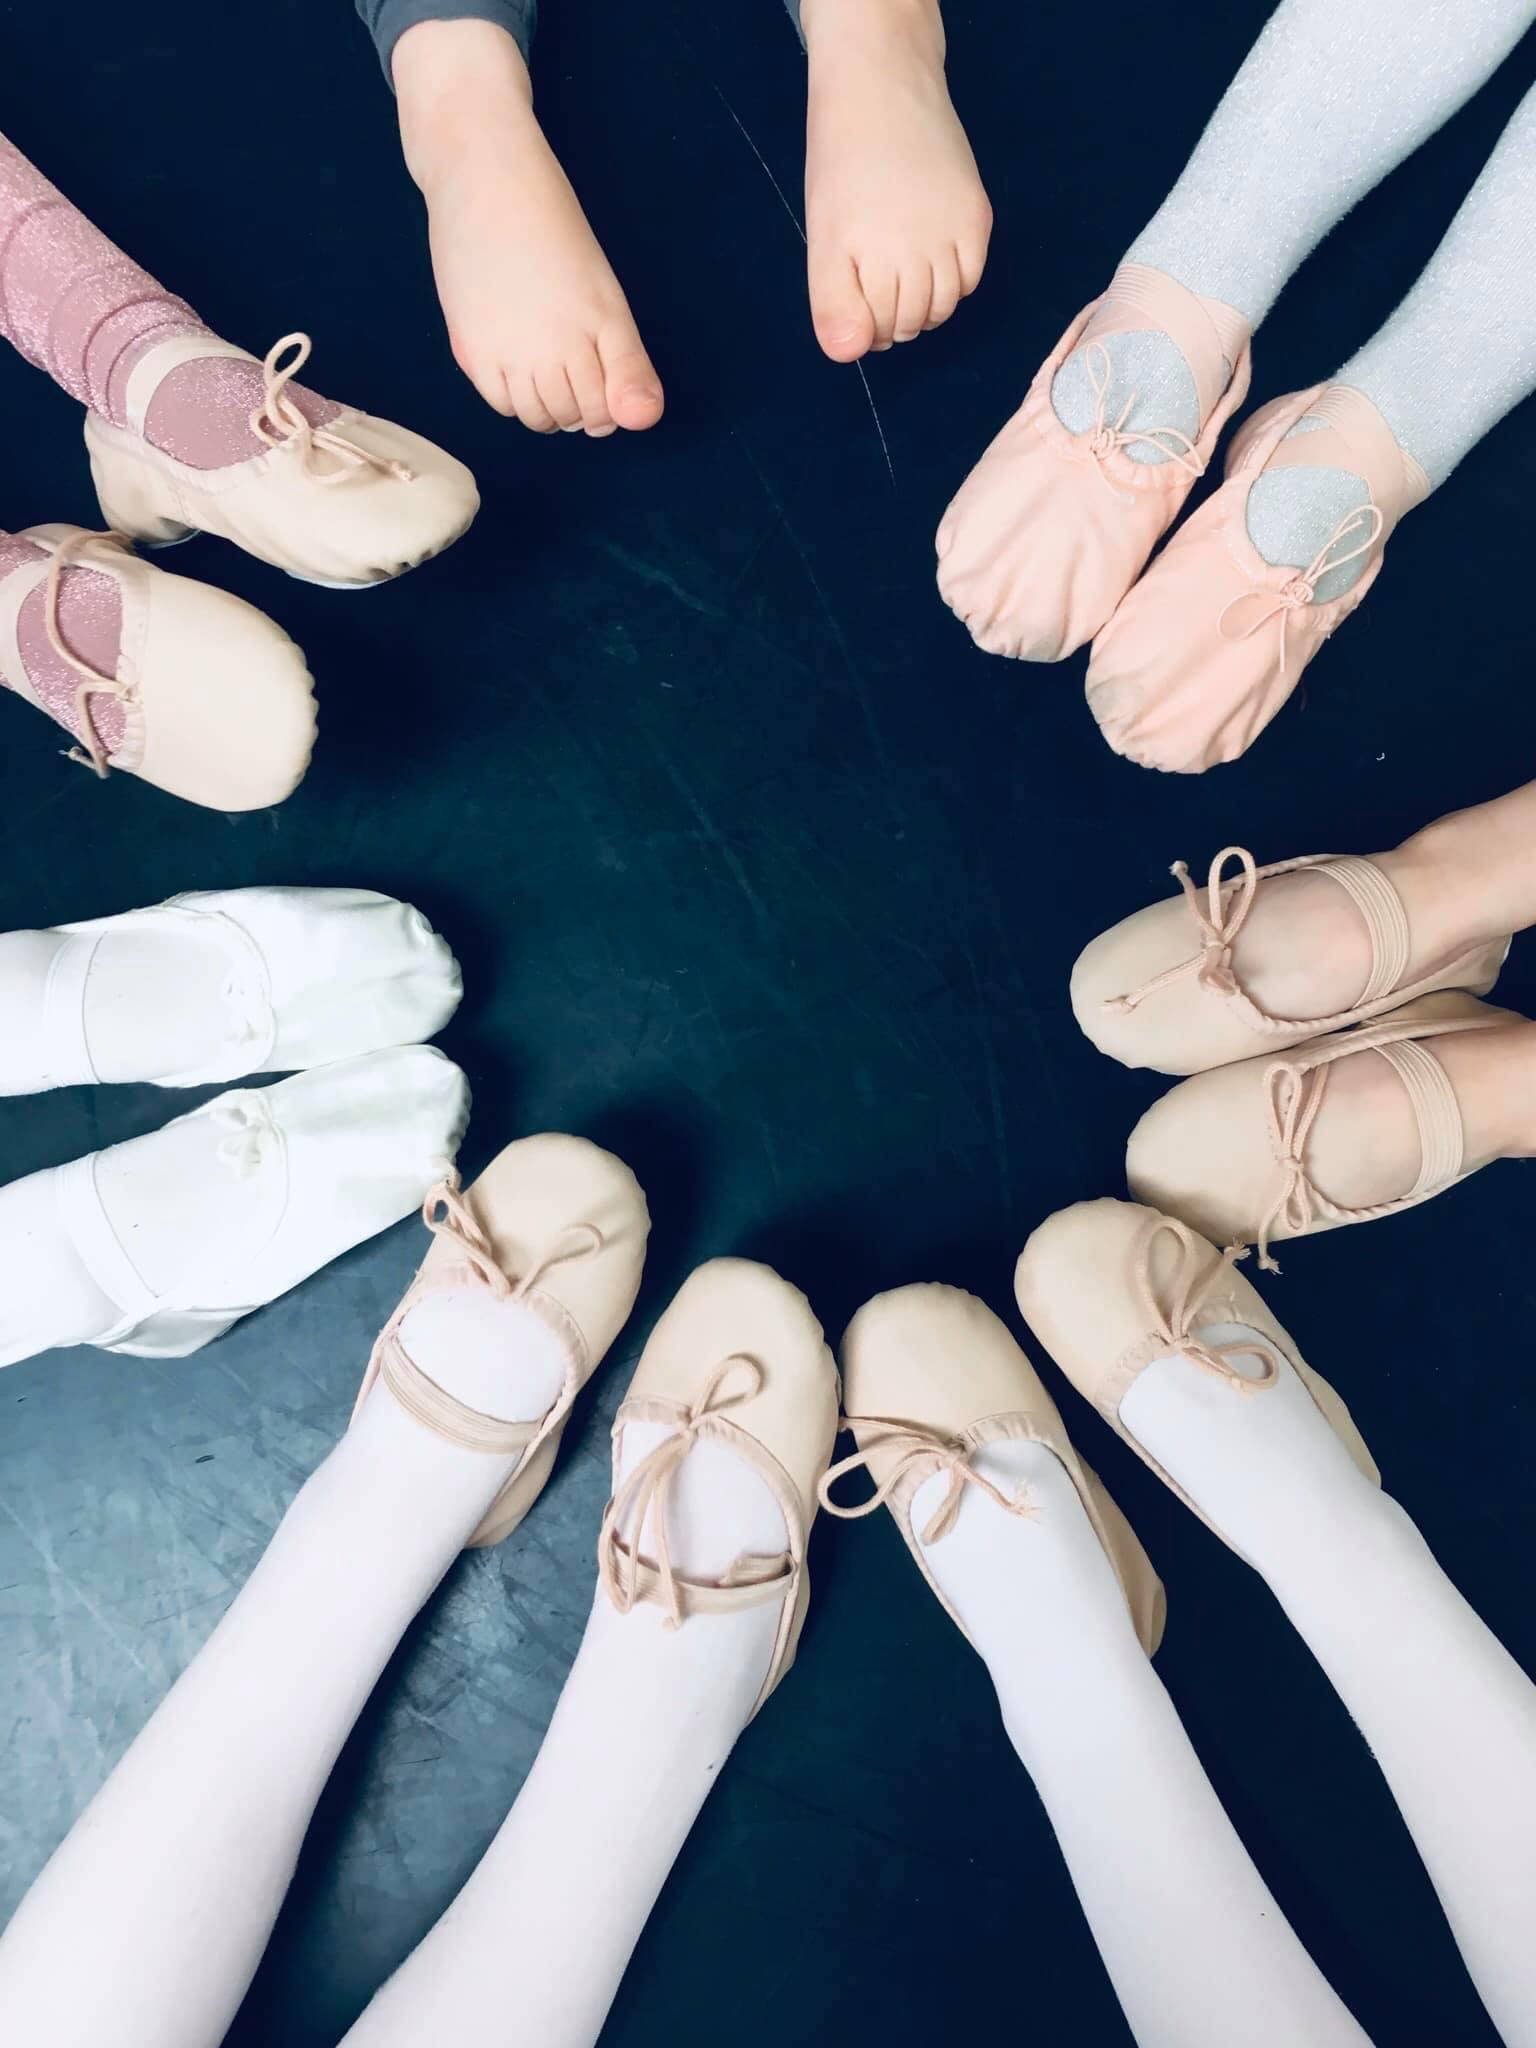 ballet shoes in a circle